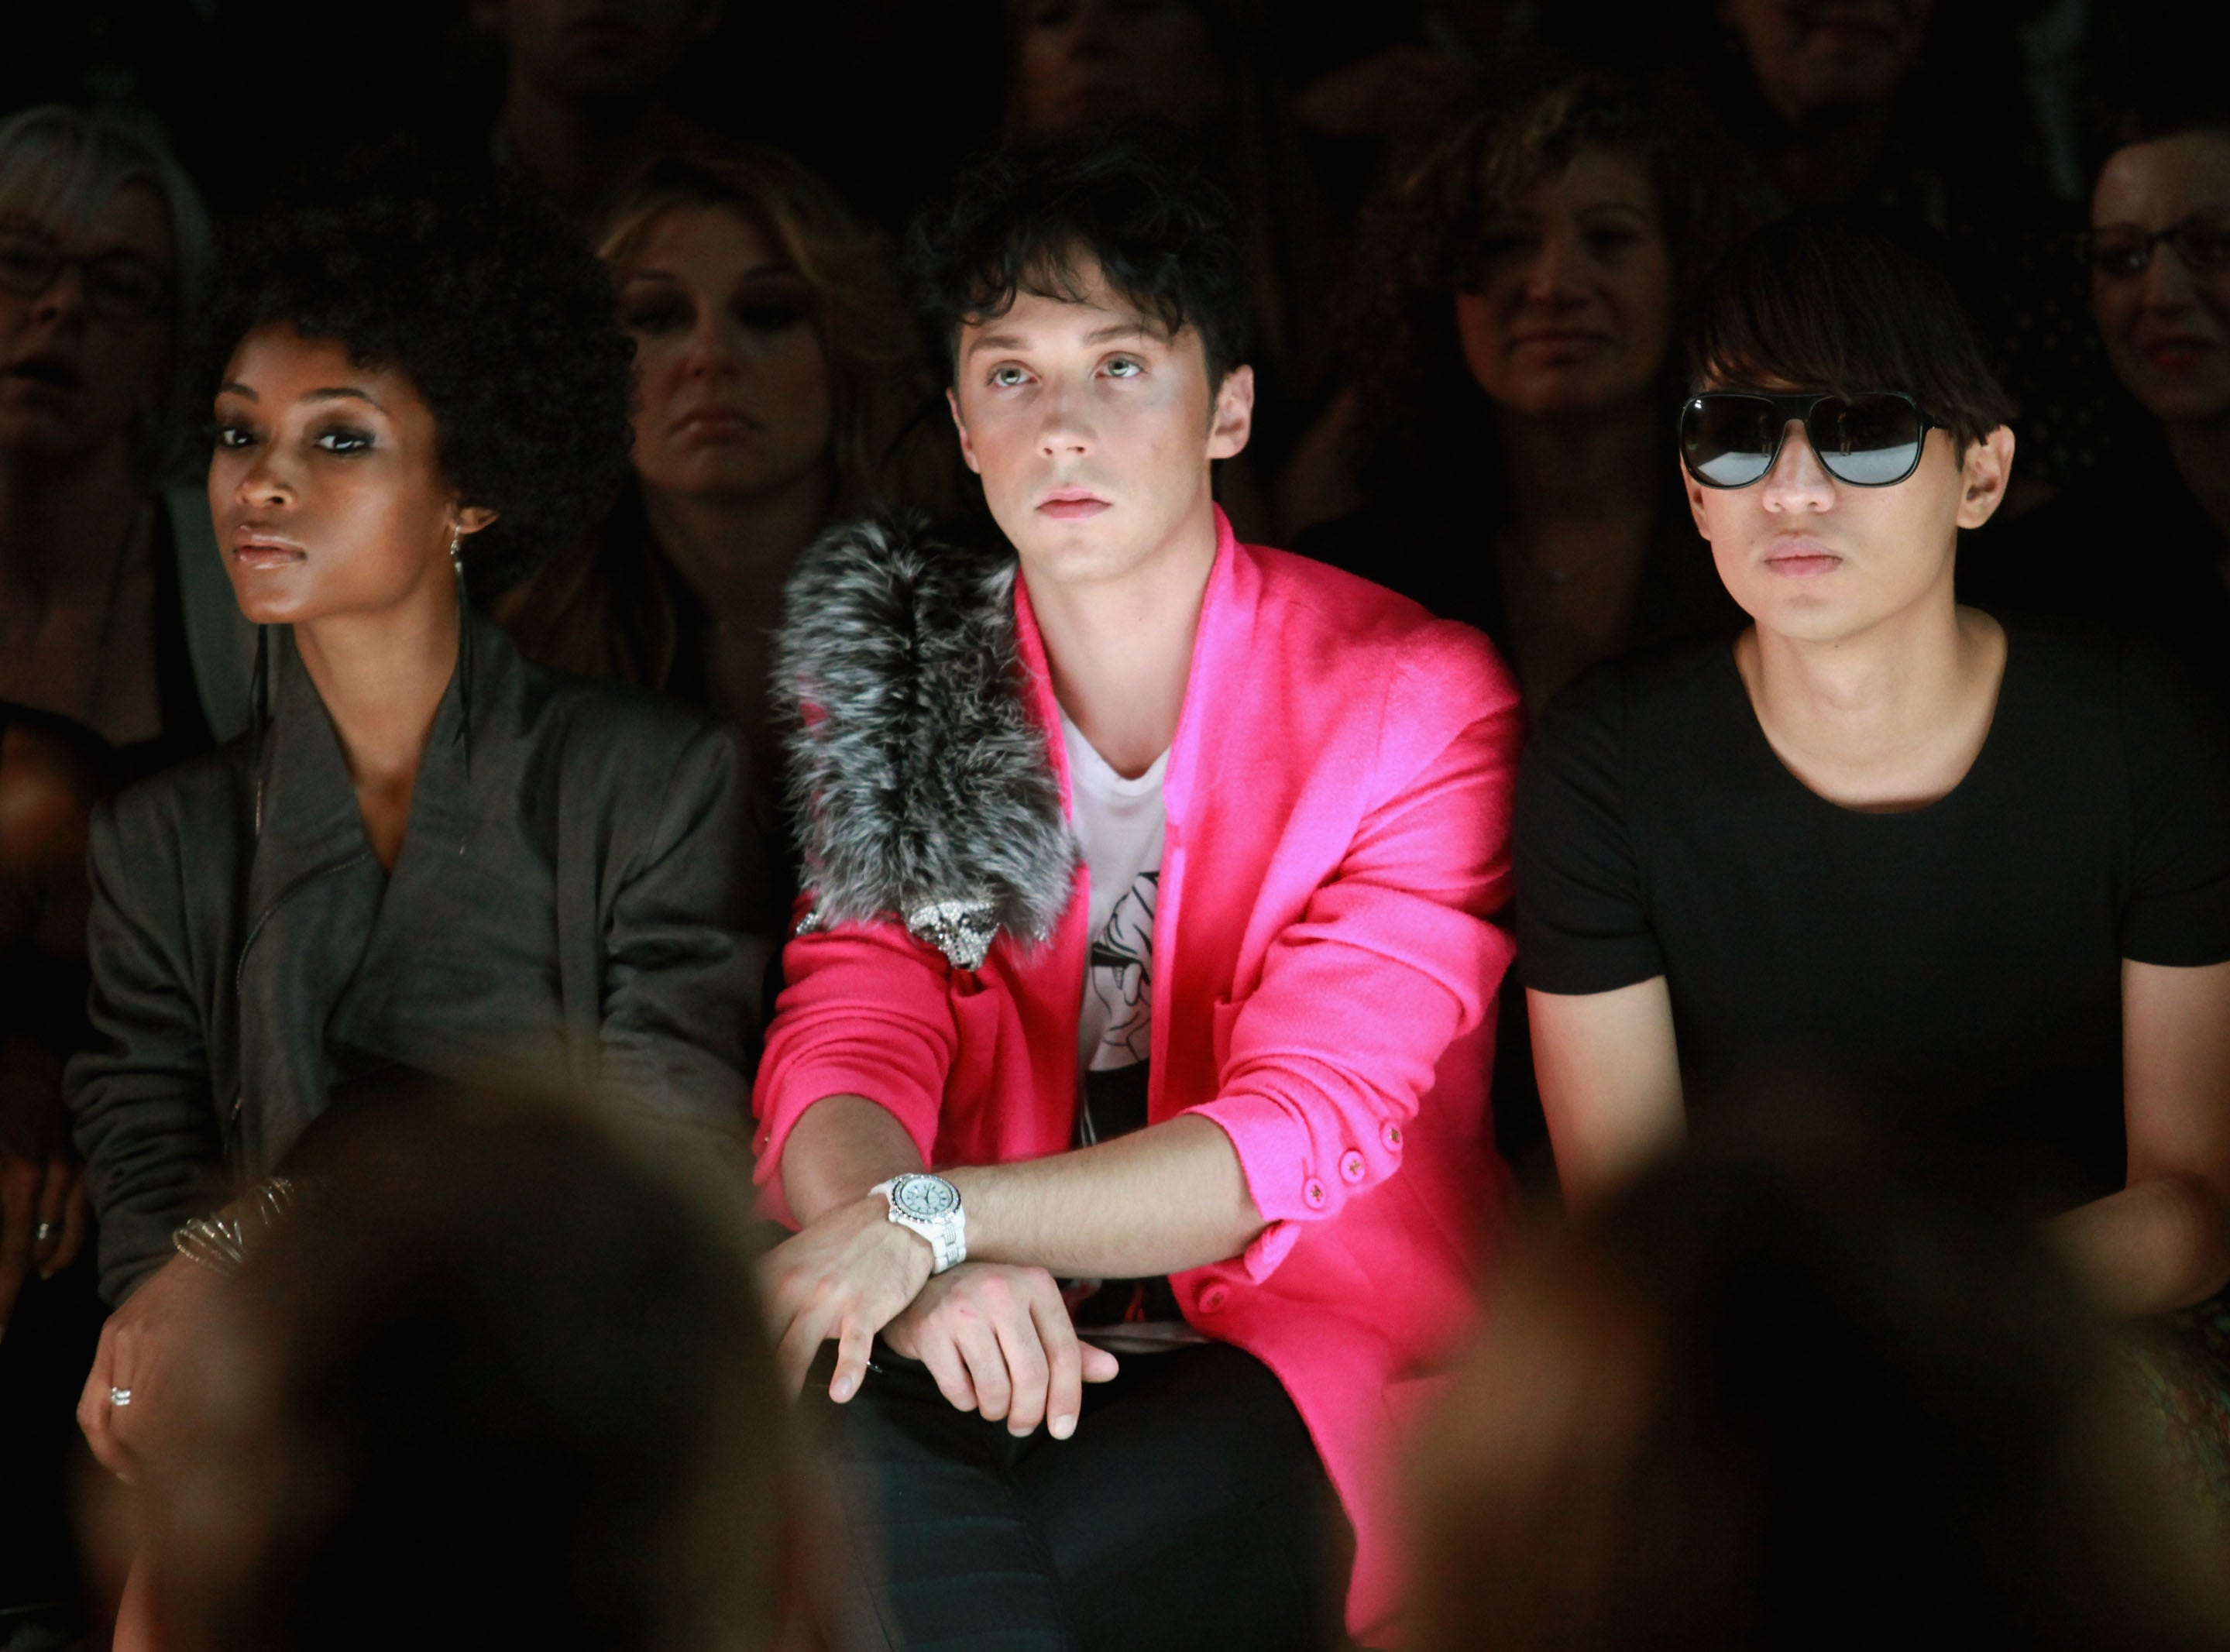 Actress Yaya DaCosta, figure skater Johnny Weir and blogger Bryan Boy attend the Isaac Mizrahi Spring 2011 fashion show during Mercedes-Benz Fashion Week at The Theater at Lincoln Center on September 16, 2010 in New York City.